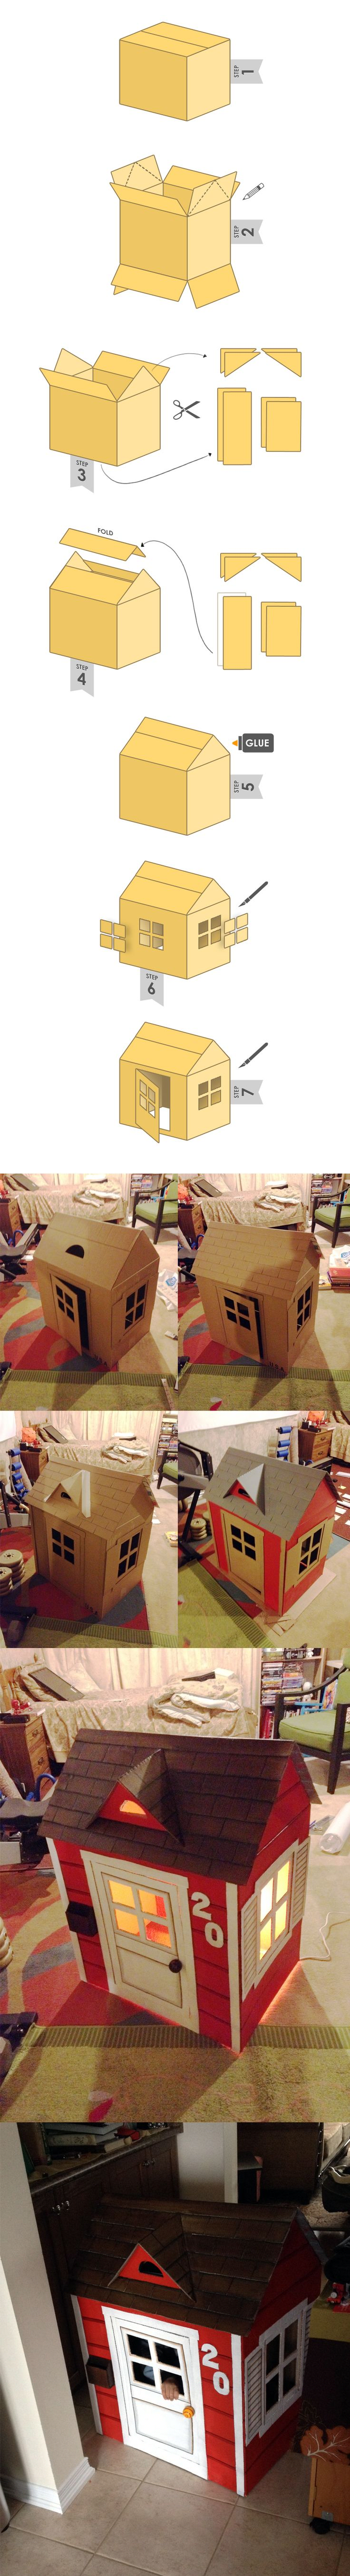 Cardboard box house. Step 0: Buy something that comes in a giant box. Proceed to Step 1.